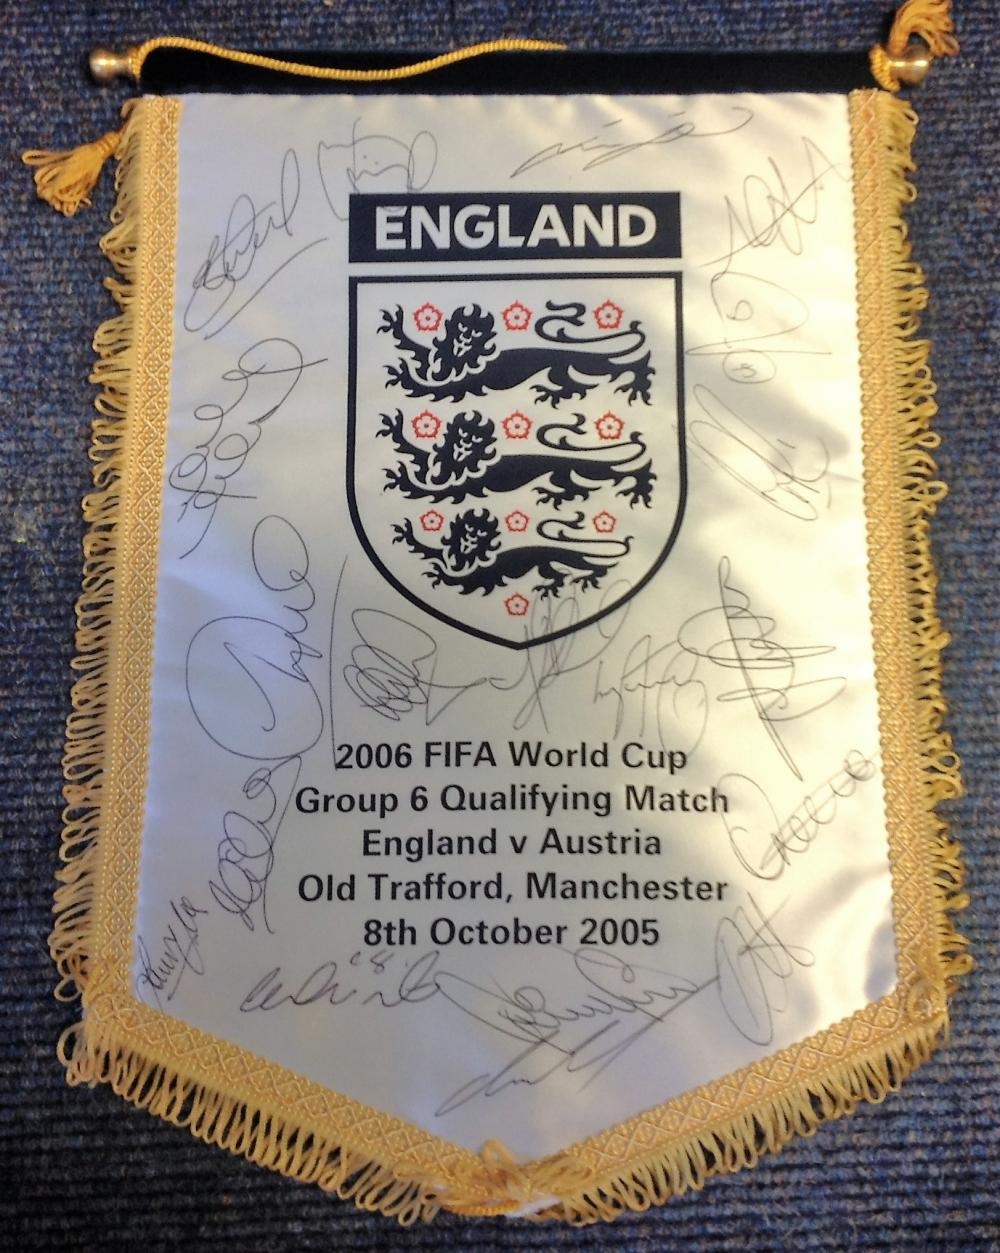 Football England commemorative pennant England v Austria Old Trafford 8th October 2005 signed by